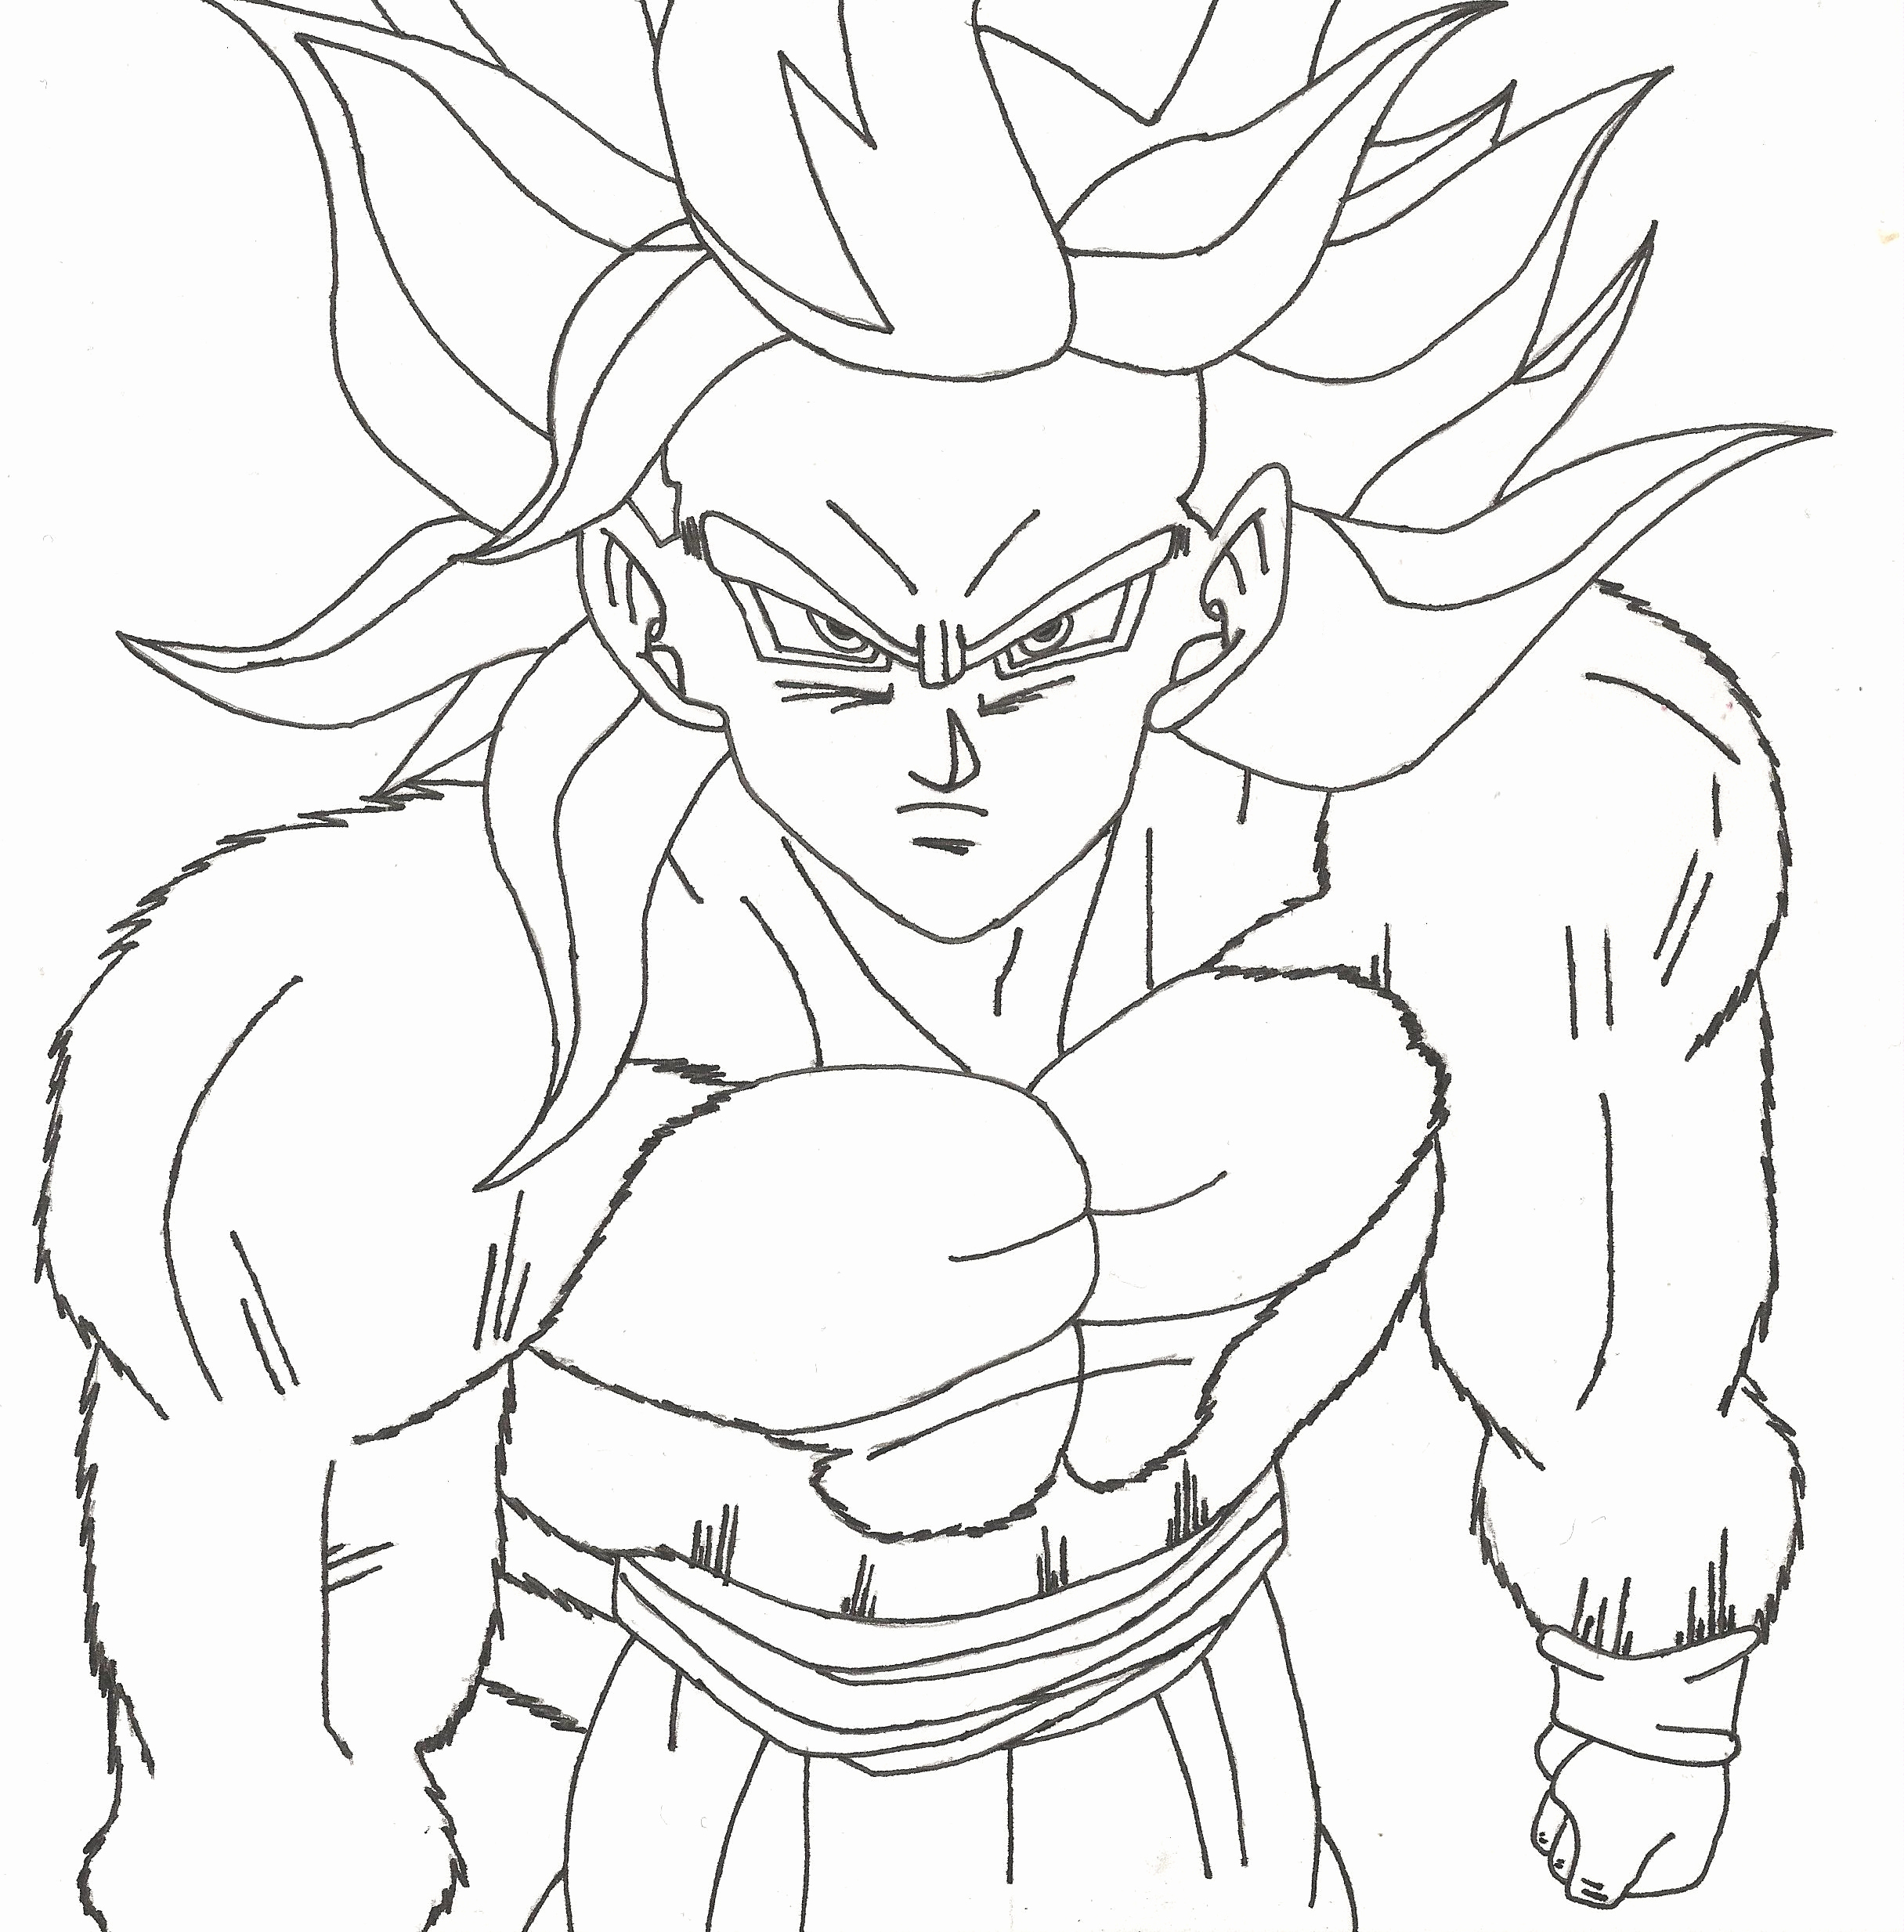 990 Dragon Ball Z Coloring Pages Printable Images & Pictures In HD